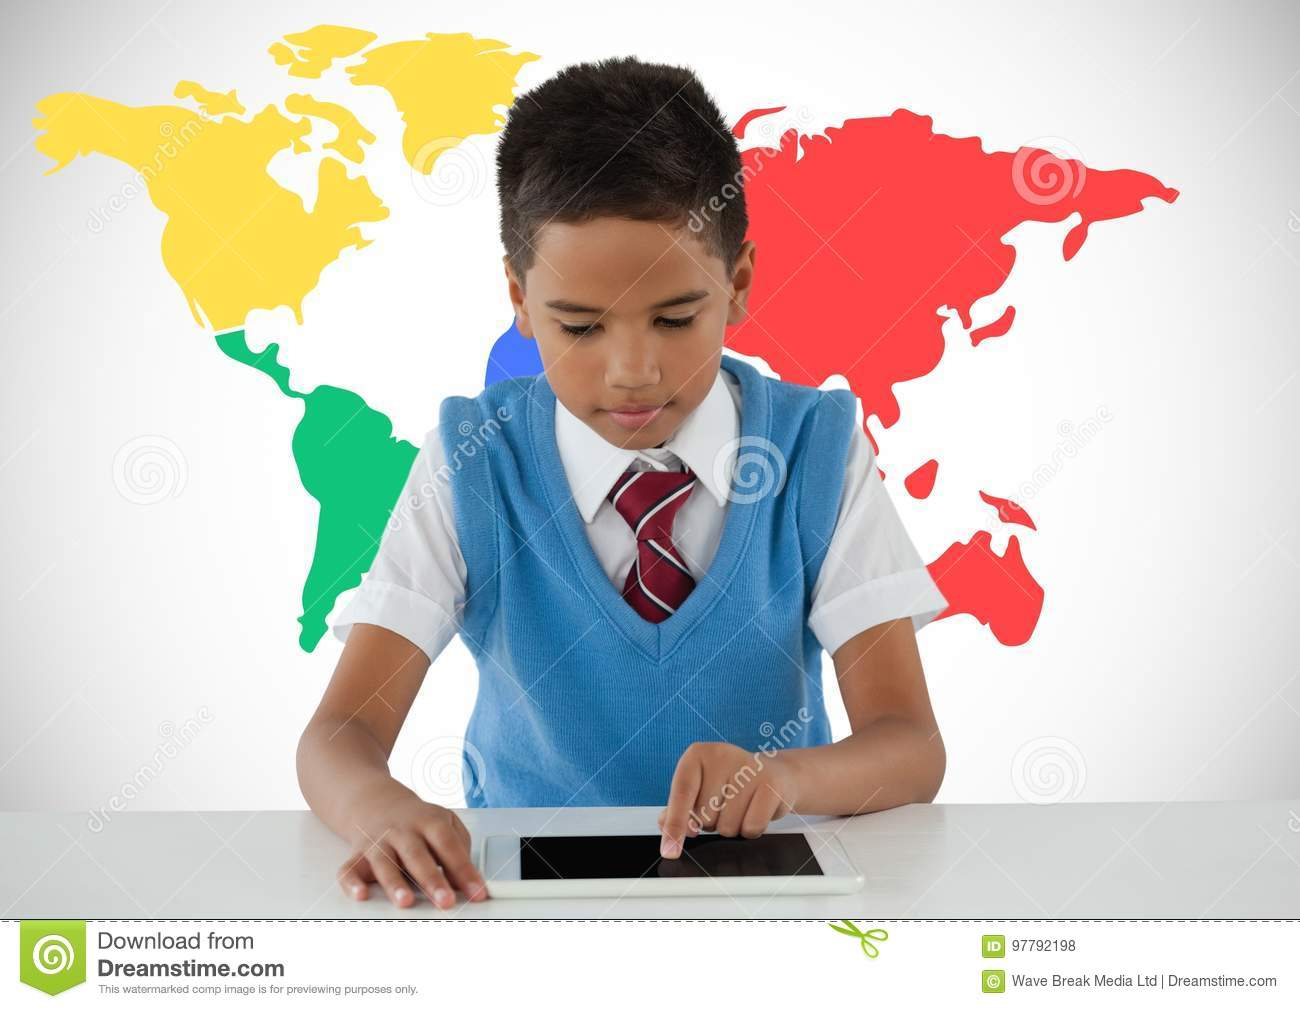 Schoolboy on tablet with colorful world map stock photo image of download comp gumiabroncs Choice Image